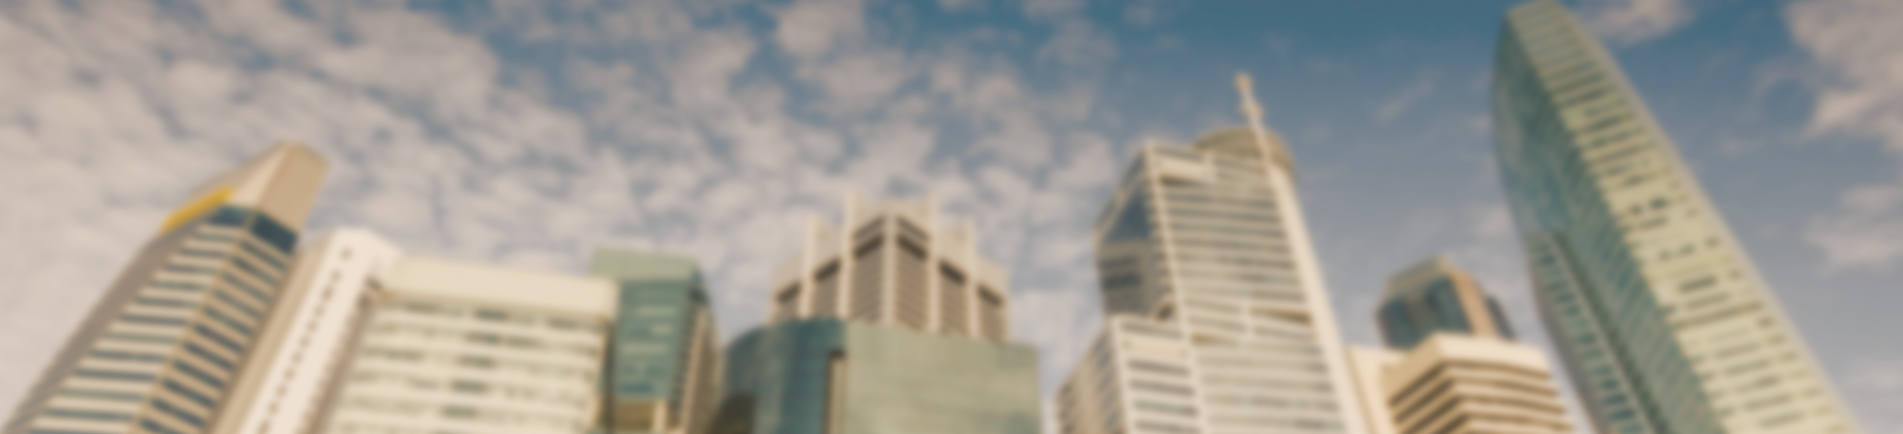 buildings-header